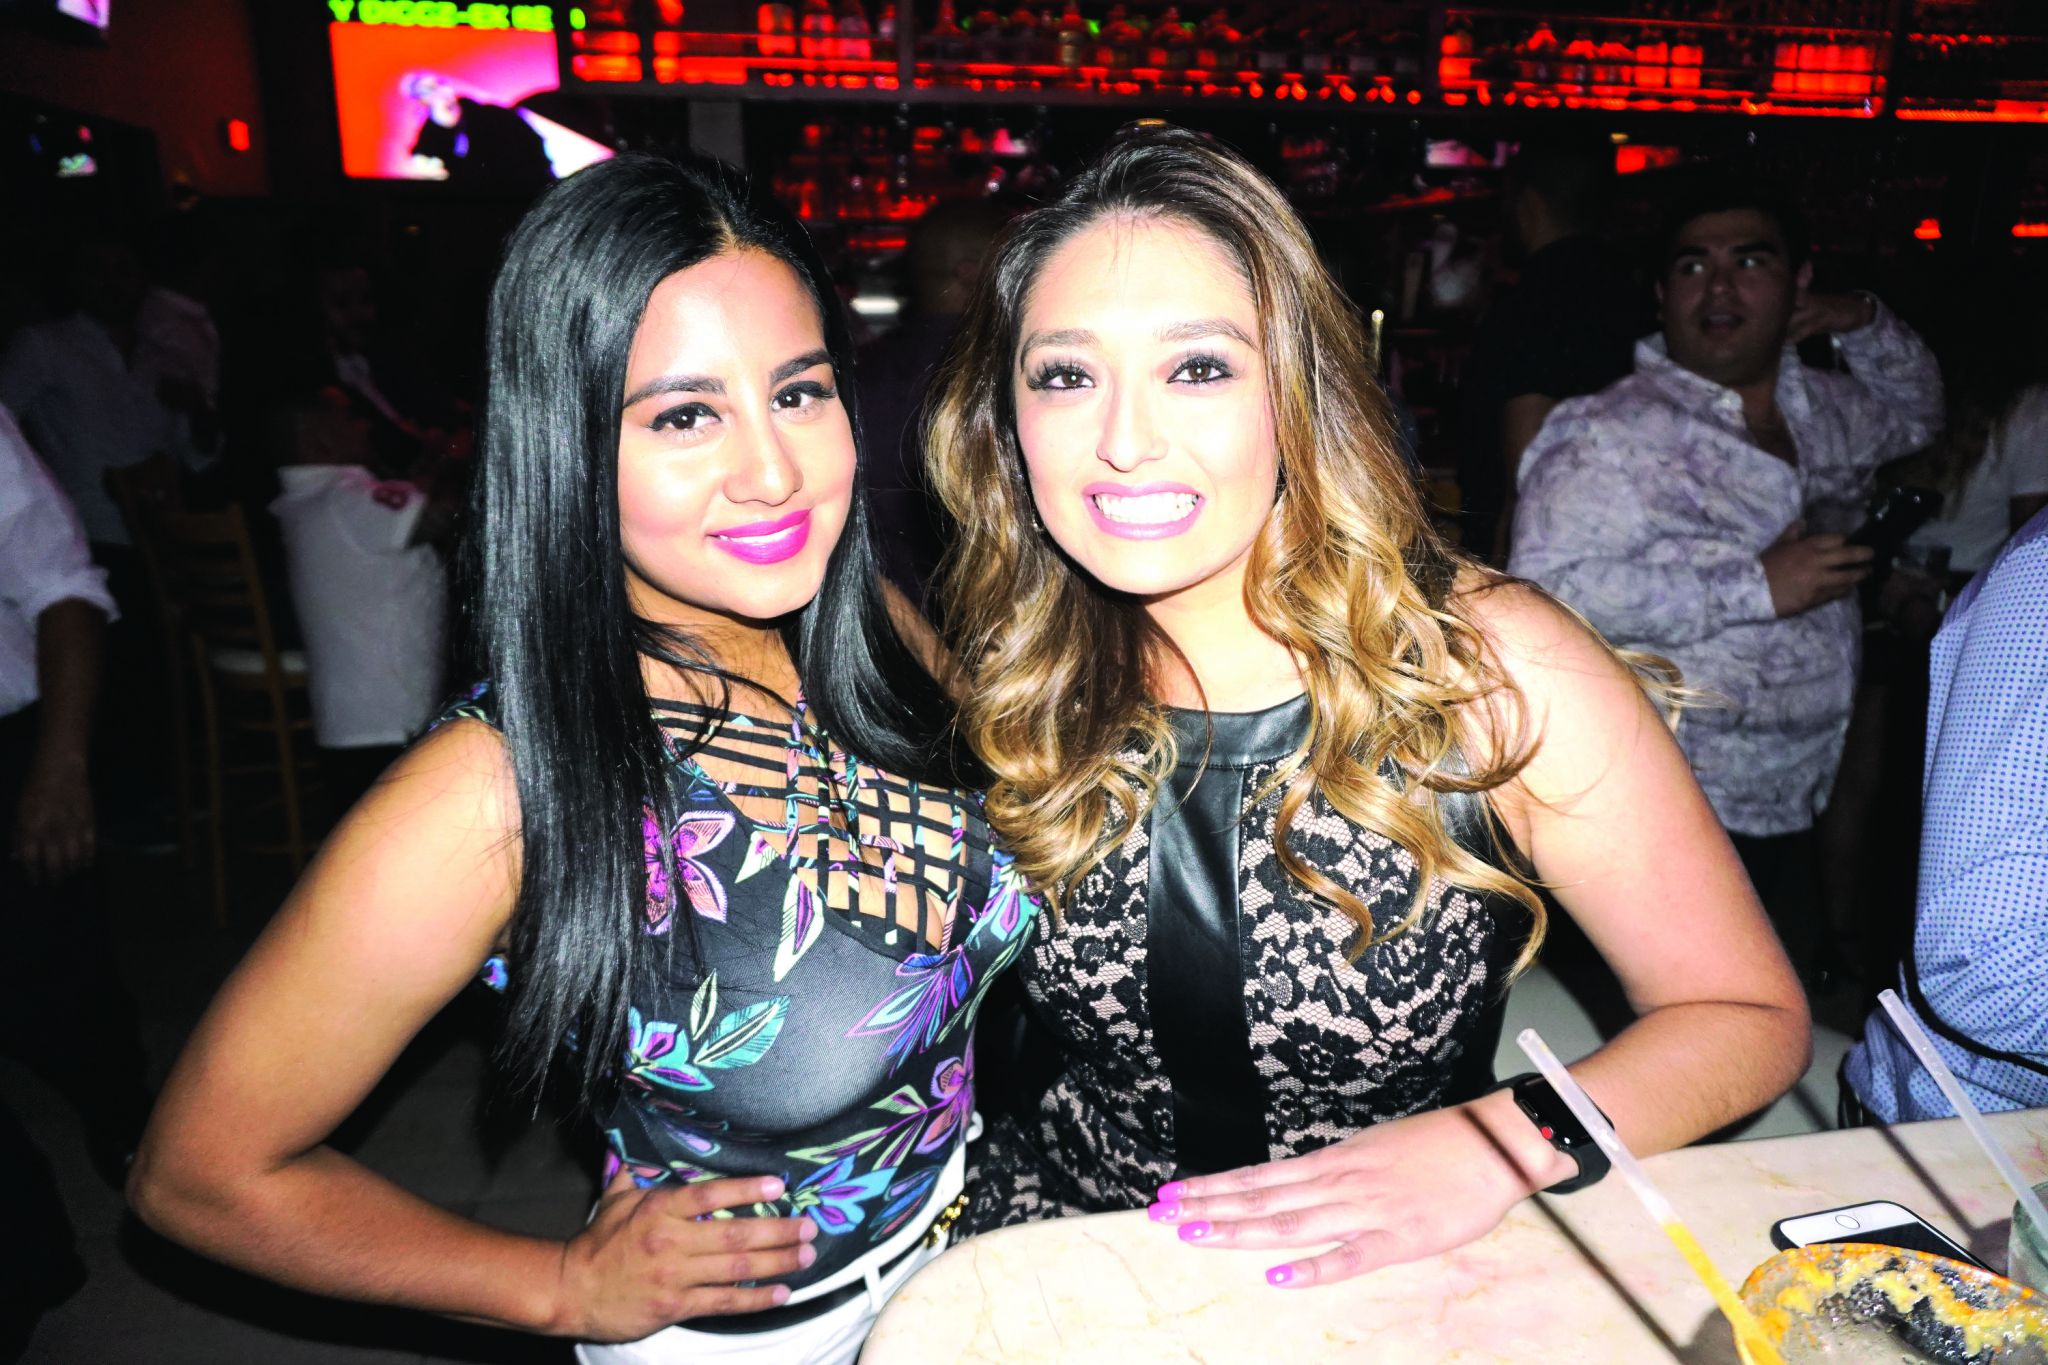 Photos Laredoans Enjoy The Nightlife Around The Gateway